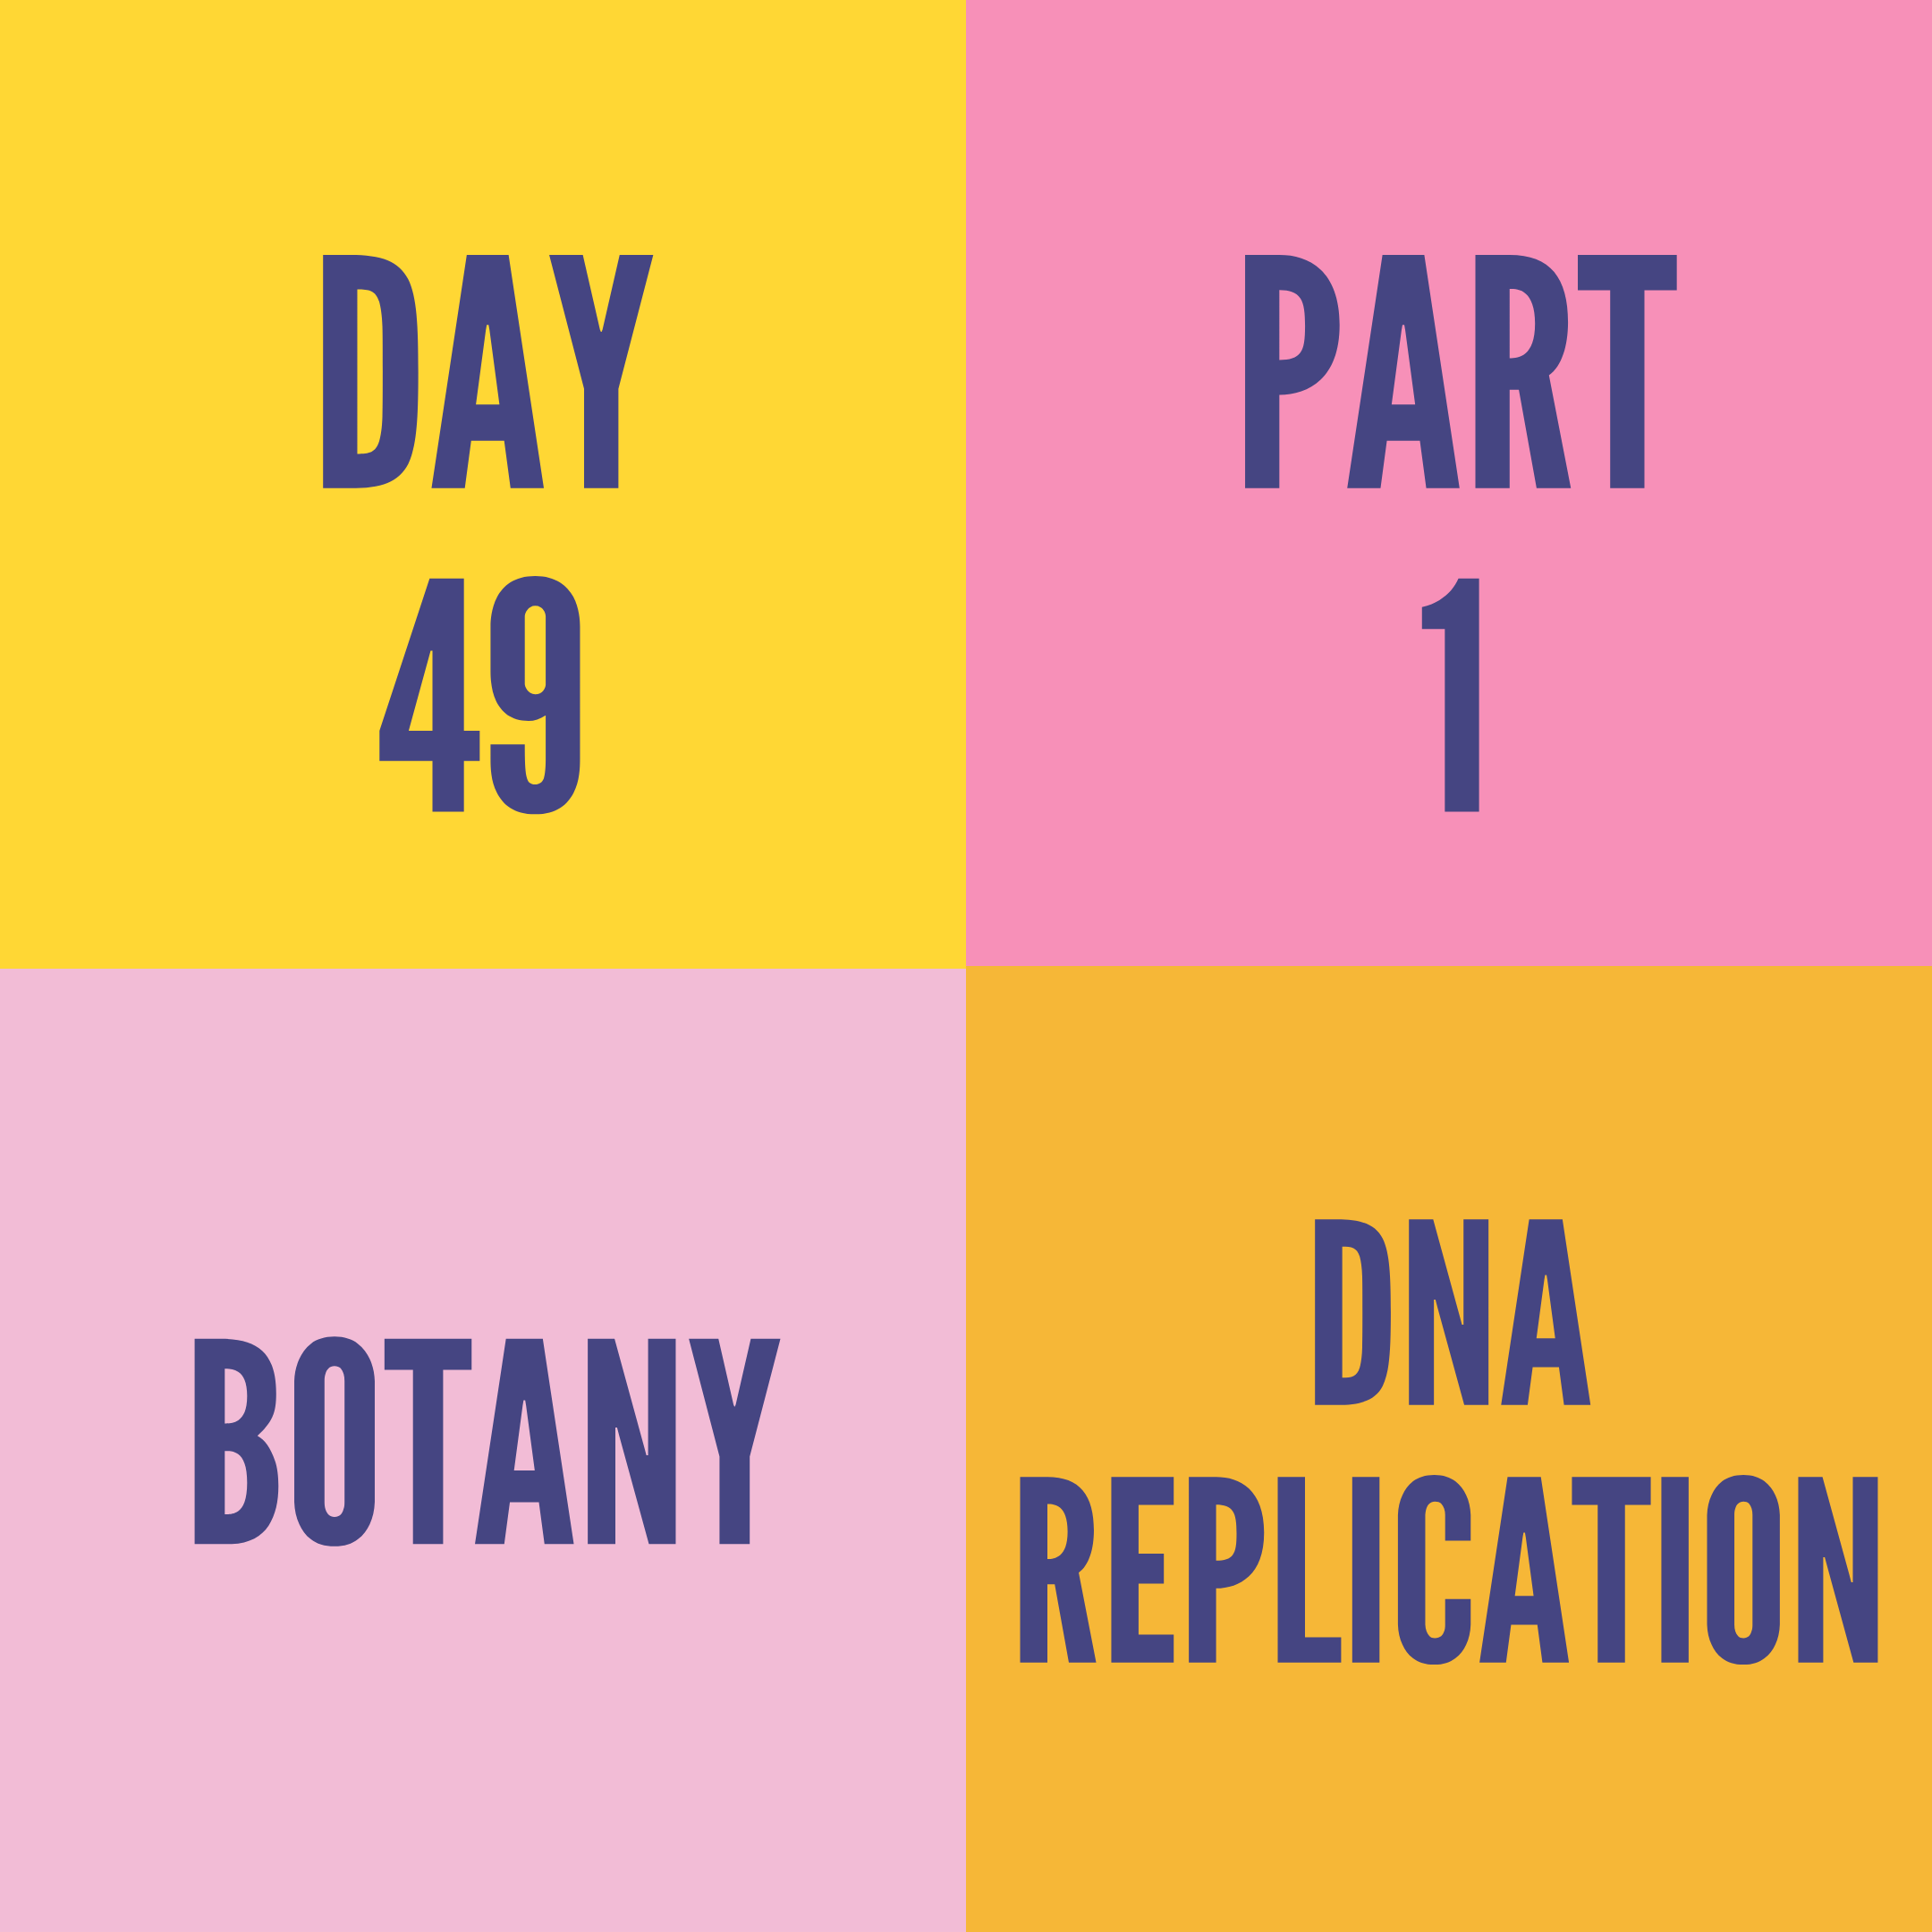 DAY-49 PART-1 DNA REPLICATION